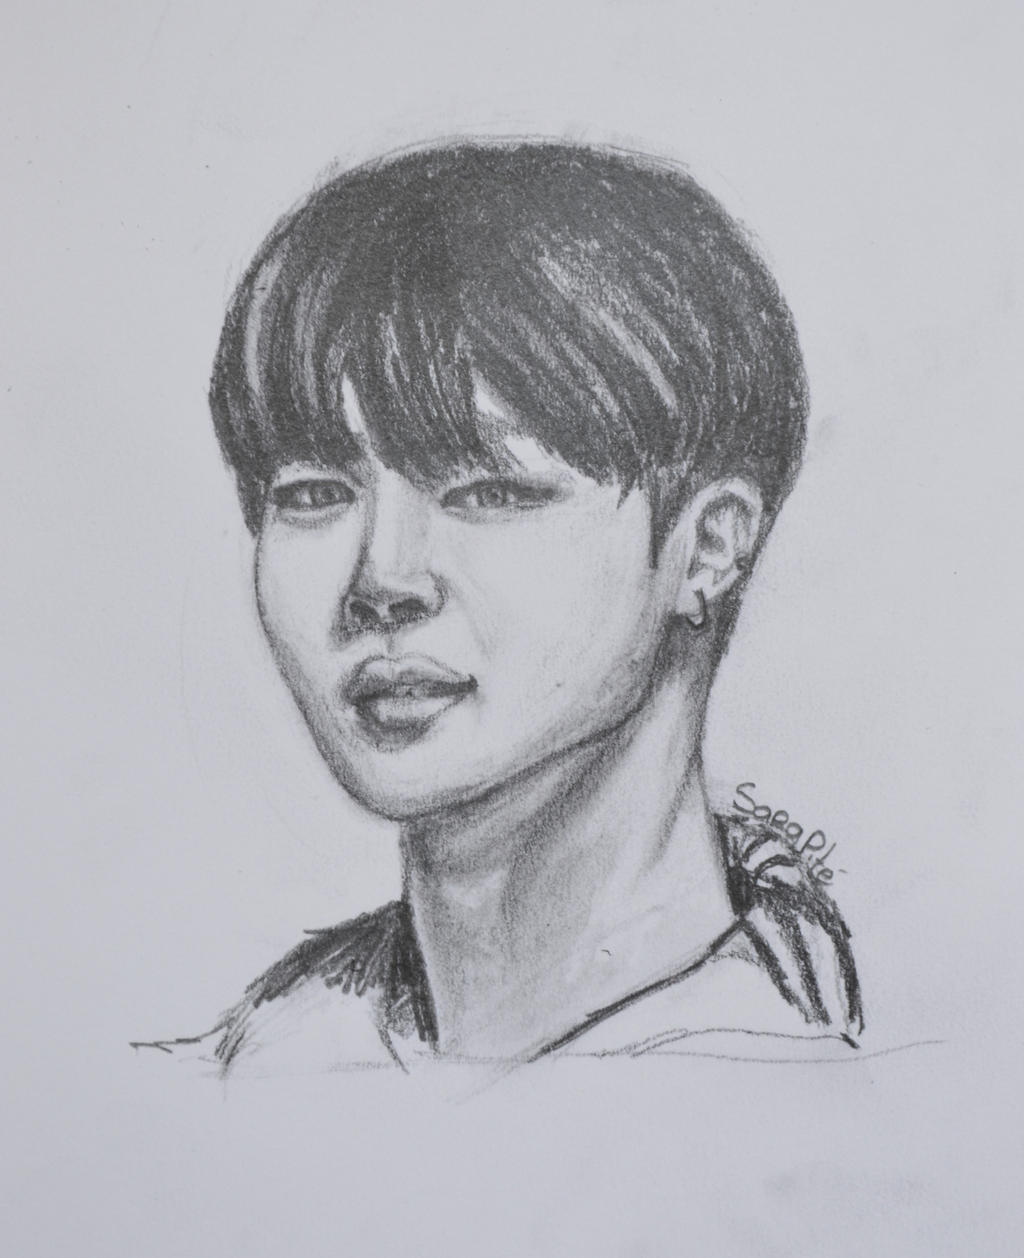 BTS - Park Jimin Drawing By Sarapite On DeviantArt